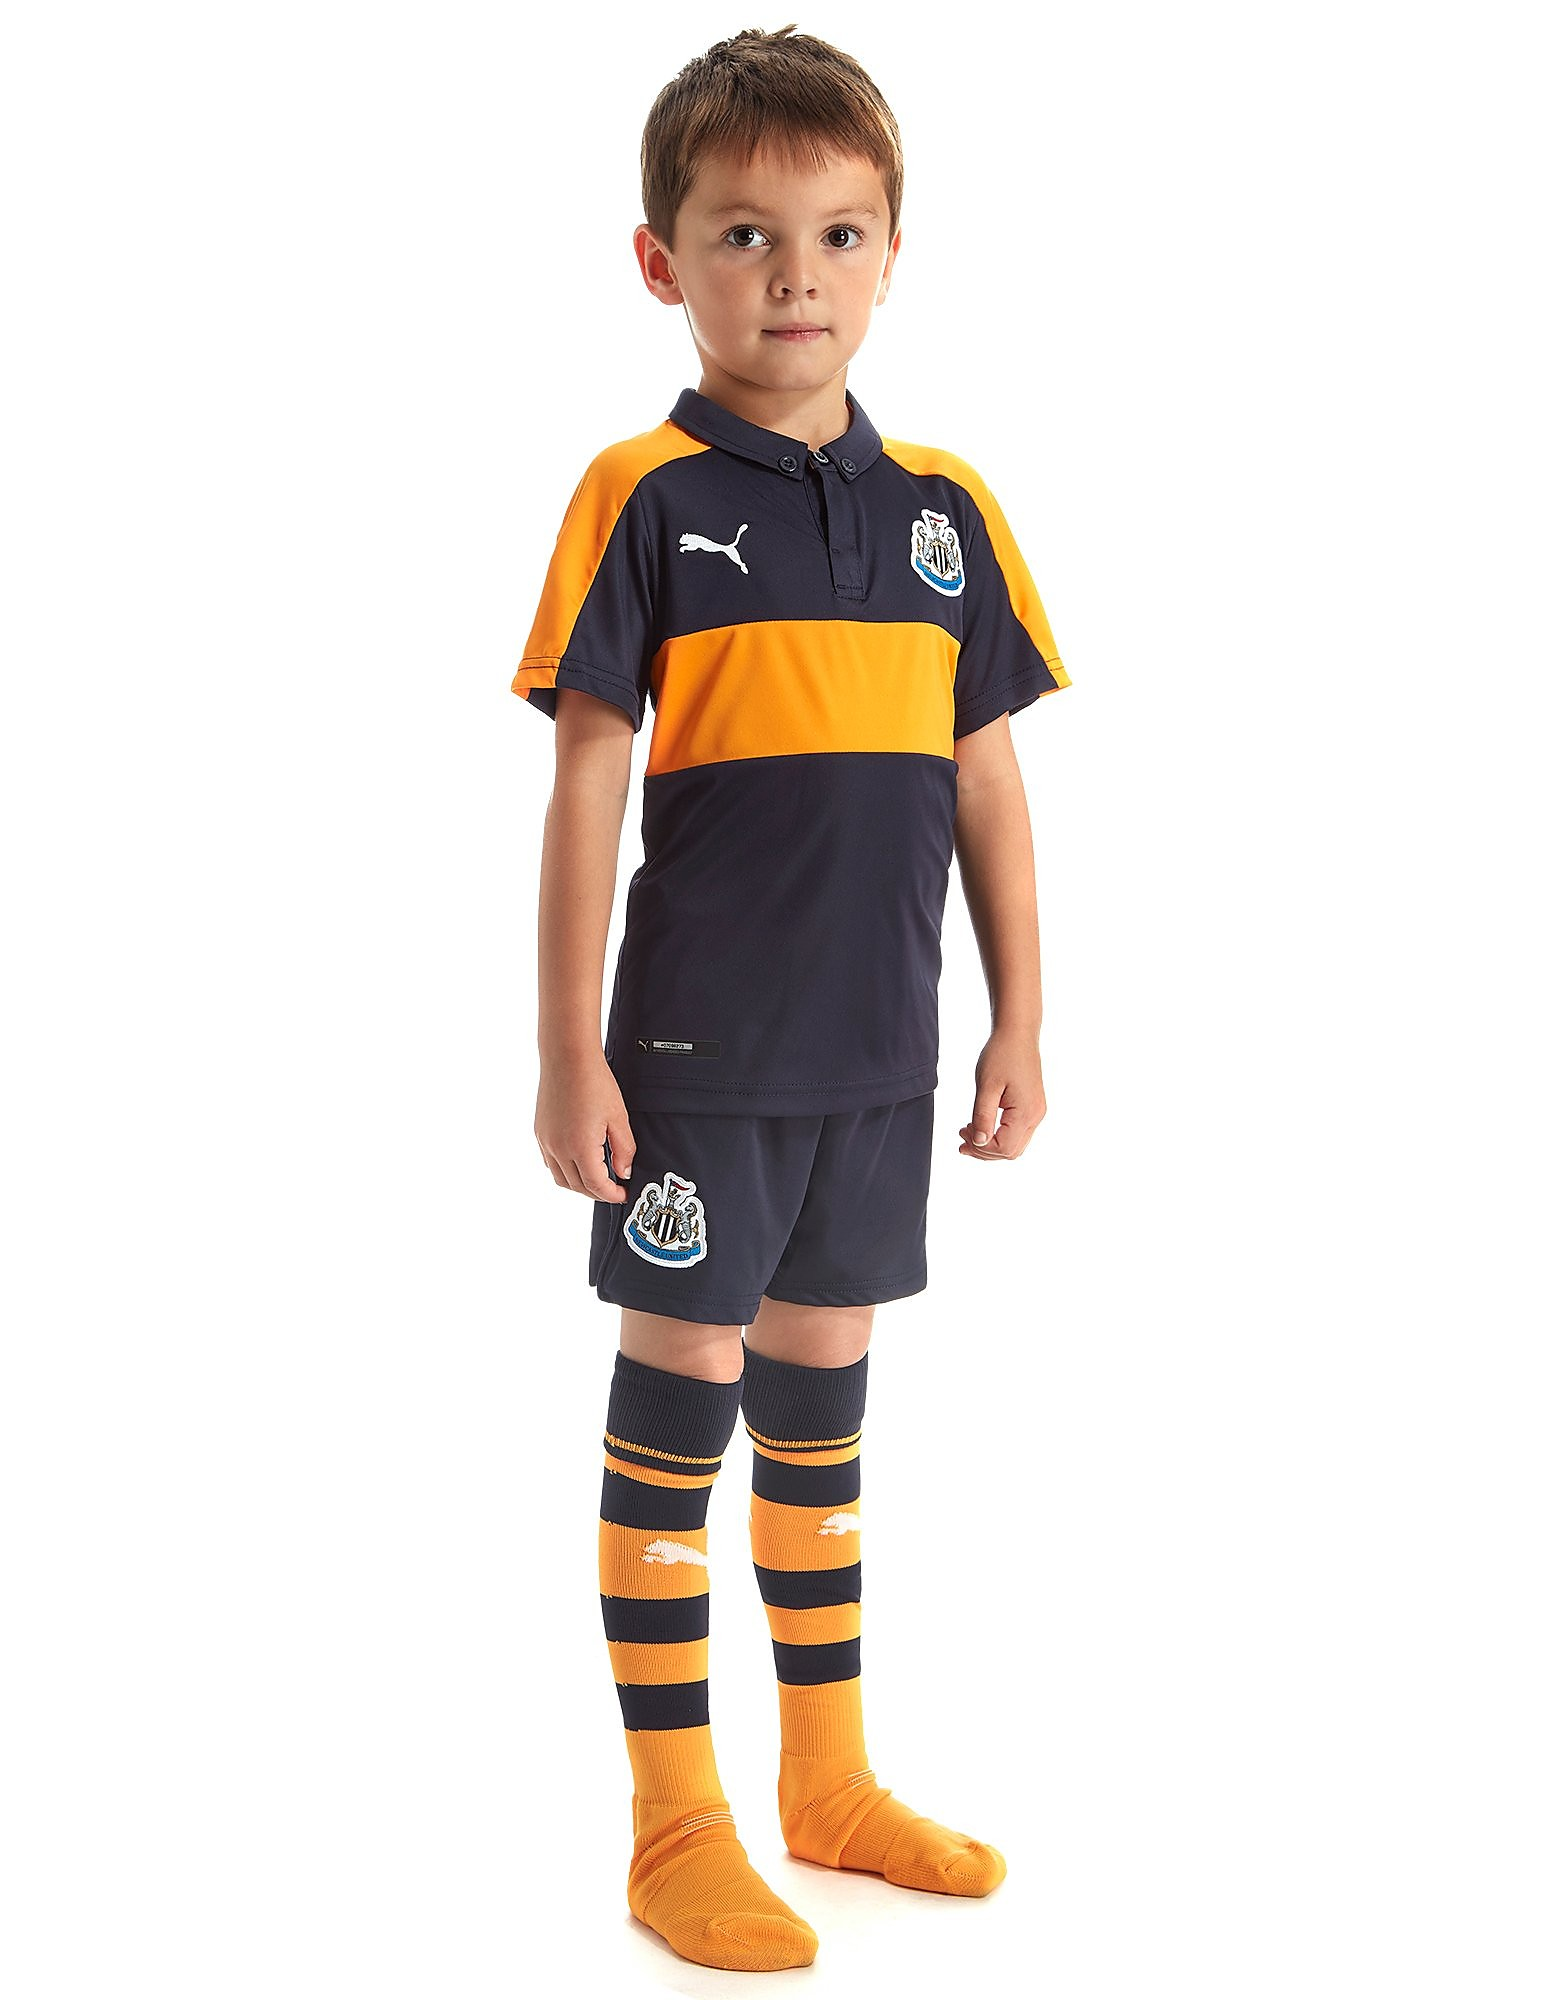 PUMA Newcastle United 2016/17 Away Kit Children